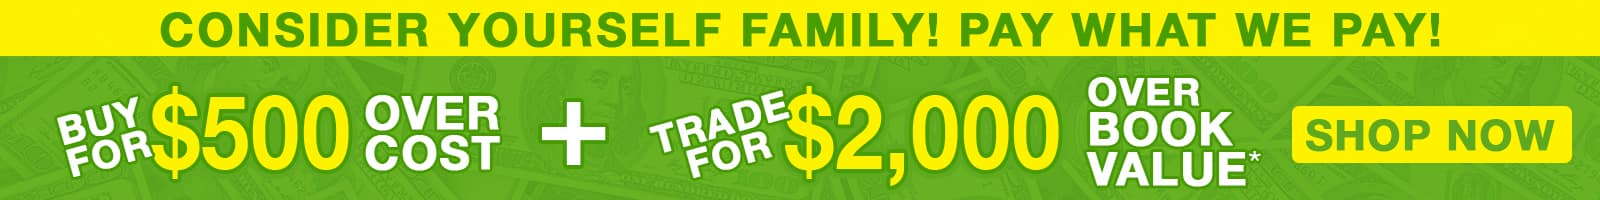 Friends & Family Pricing! $500 Over Cost, Plus $2000 Over Book Value for Trade In